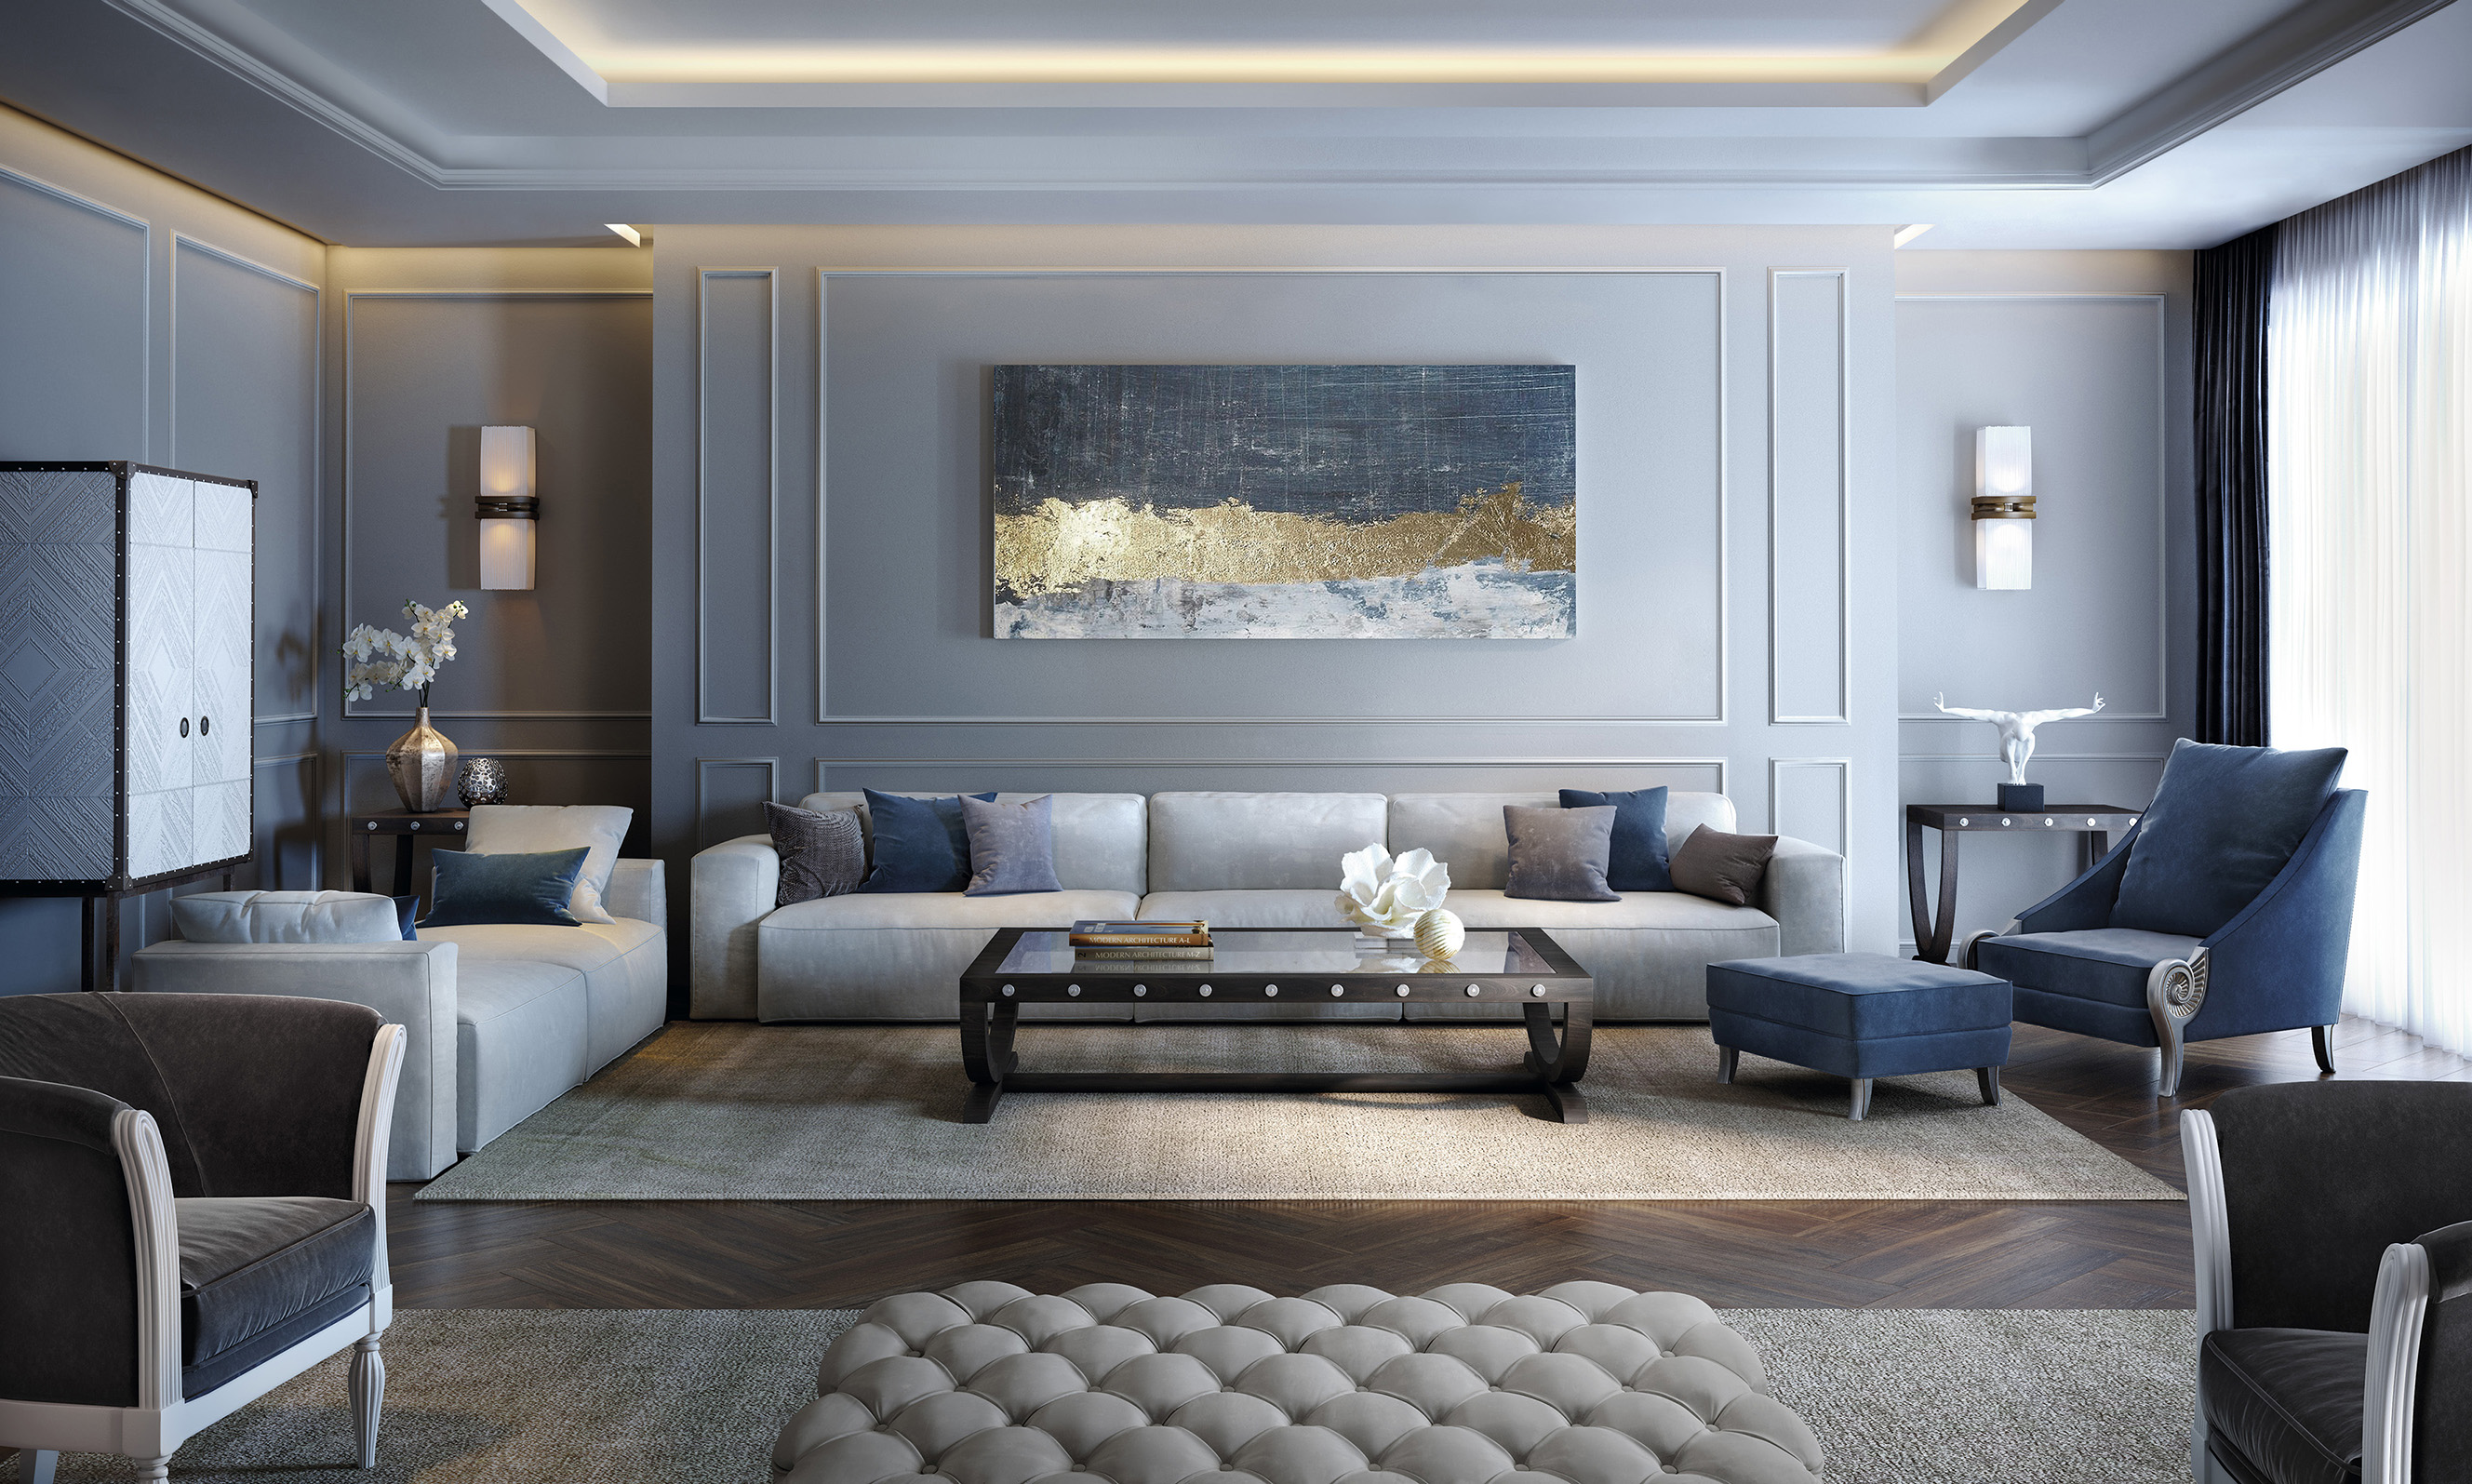 contemporary living room furniture, modern living room furniture, luxury living room furniture